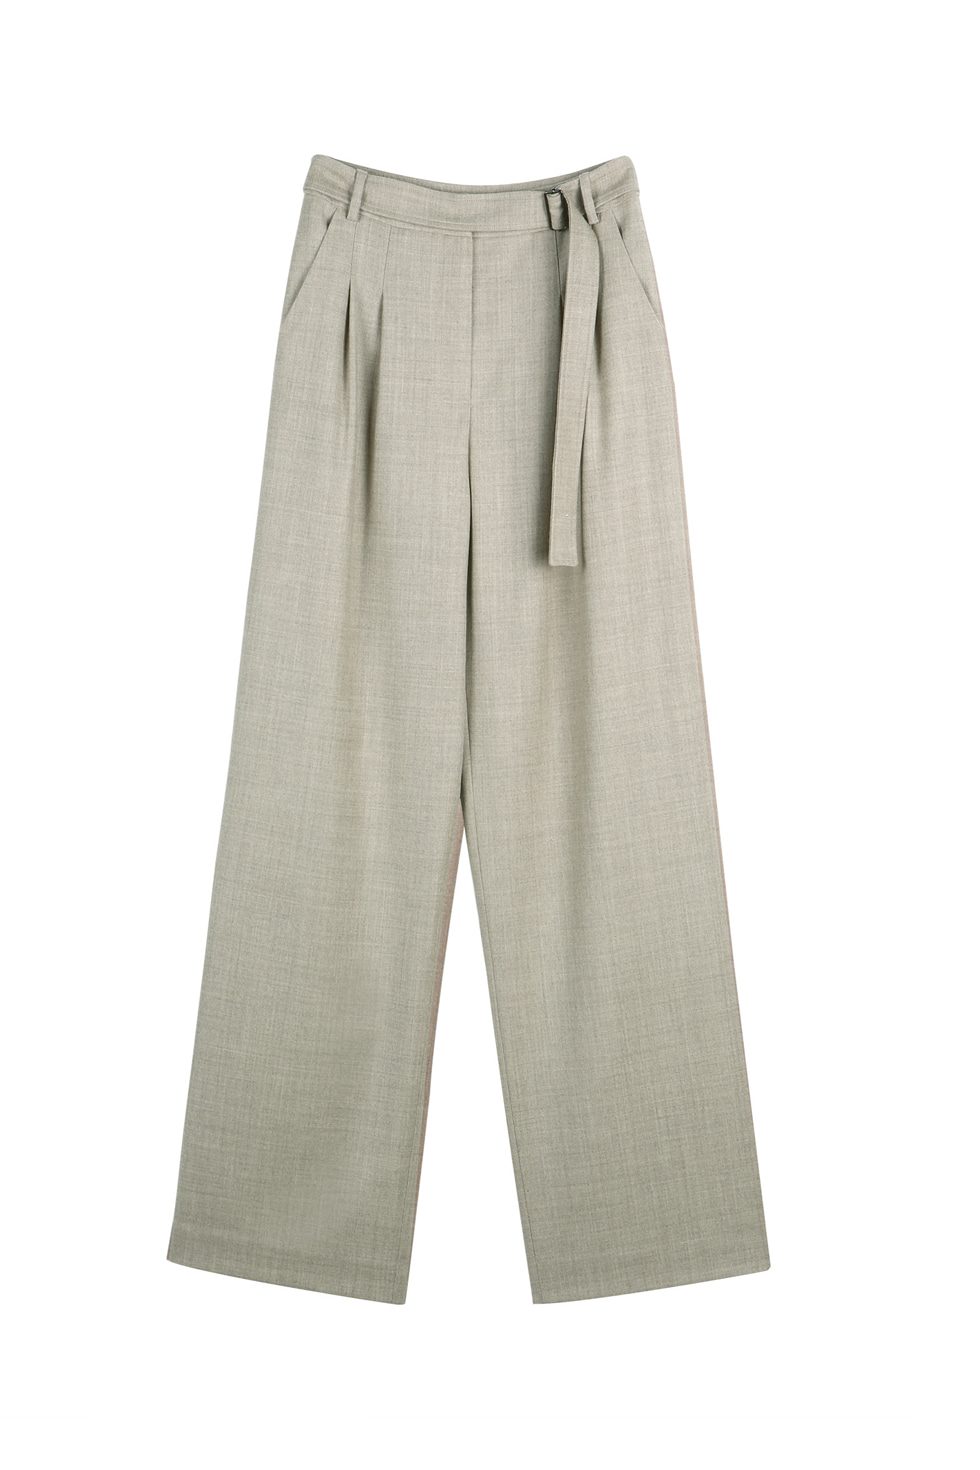 BELTED WOOL PANTS - OATMEAL